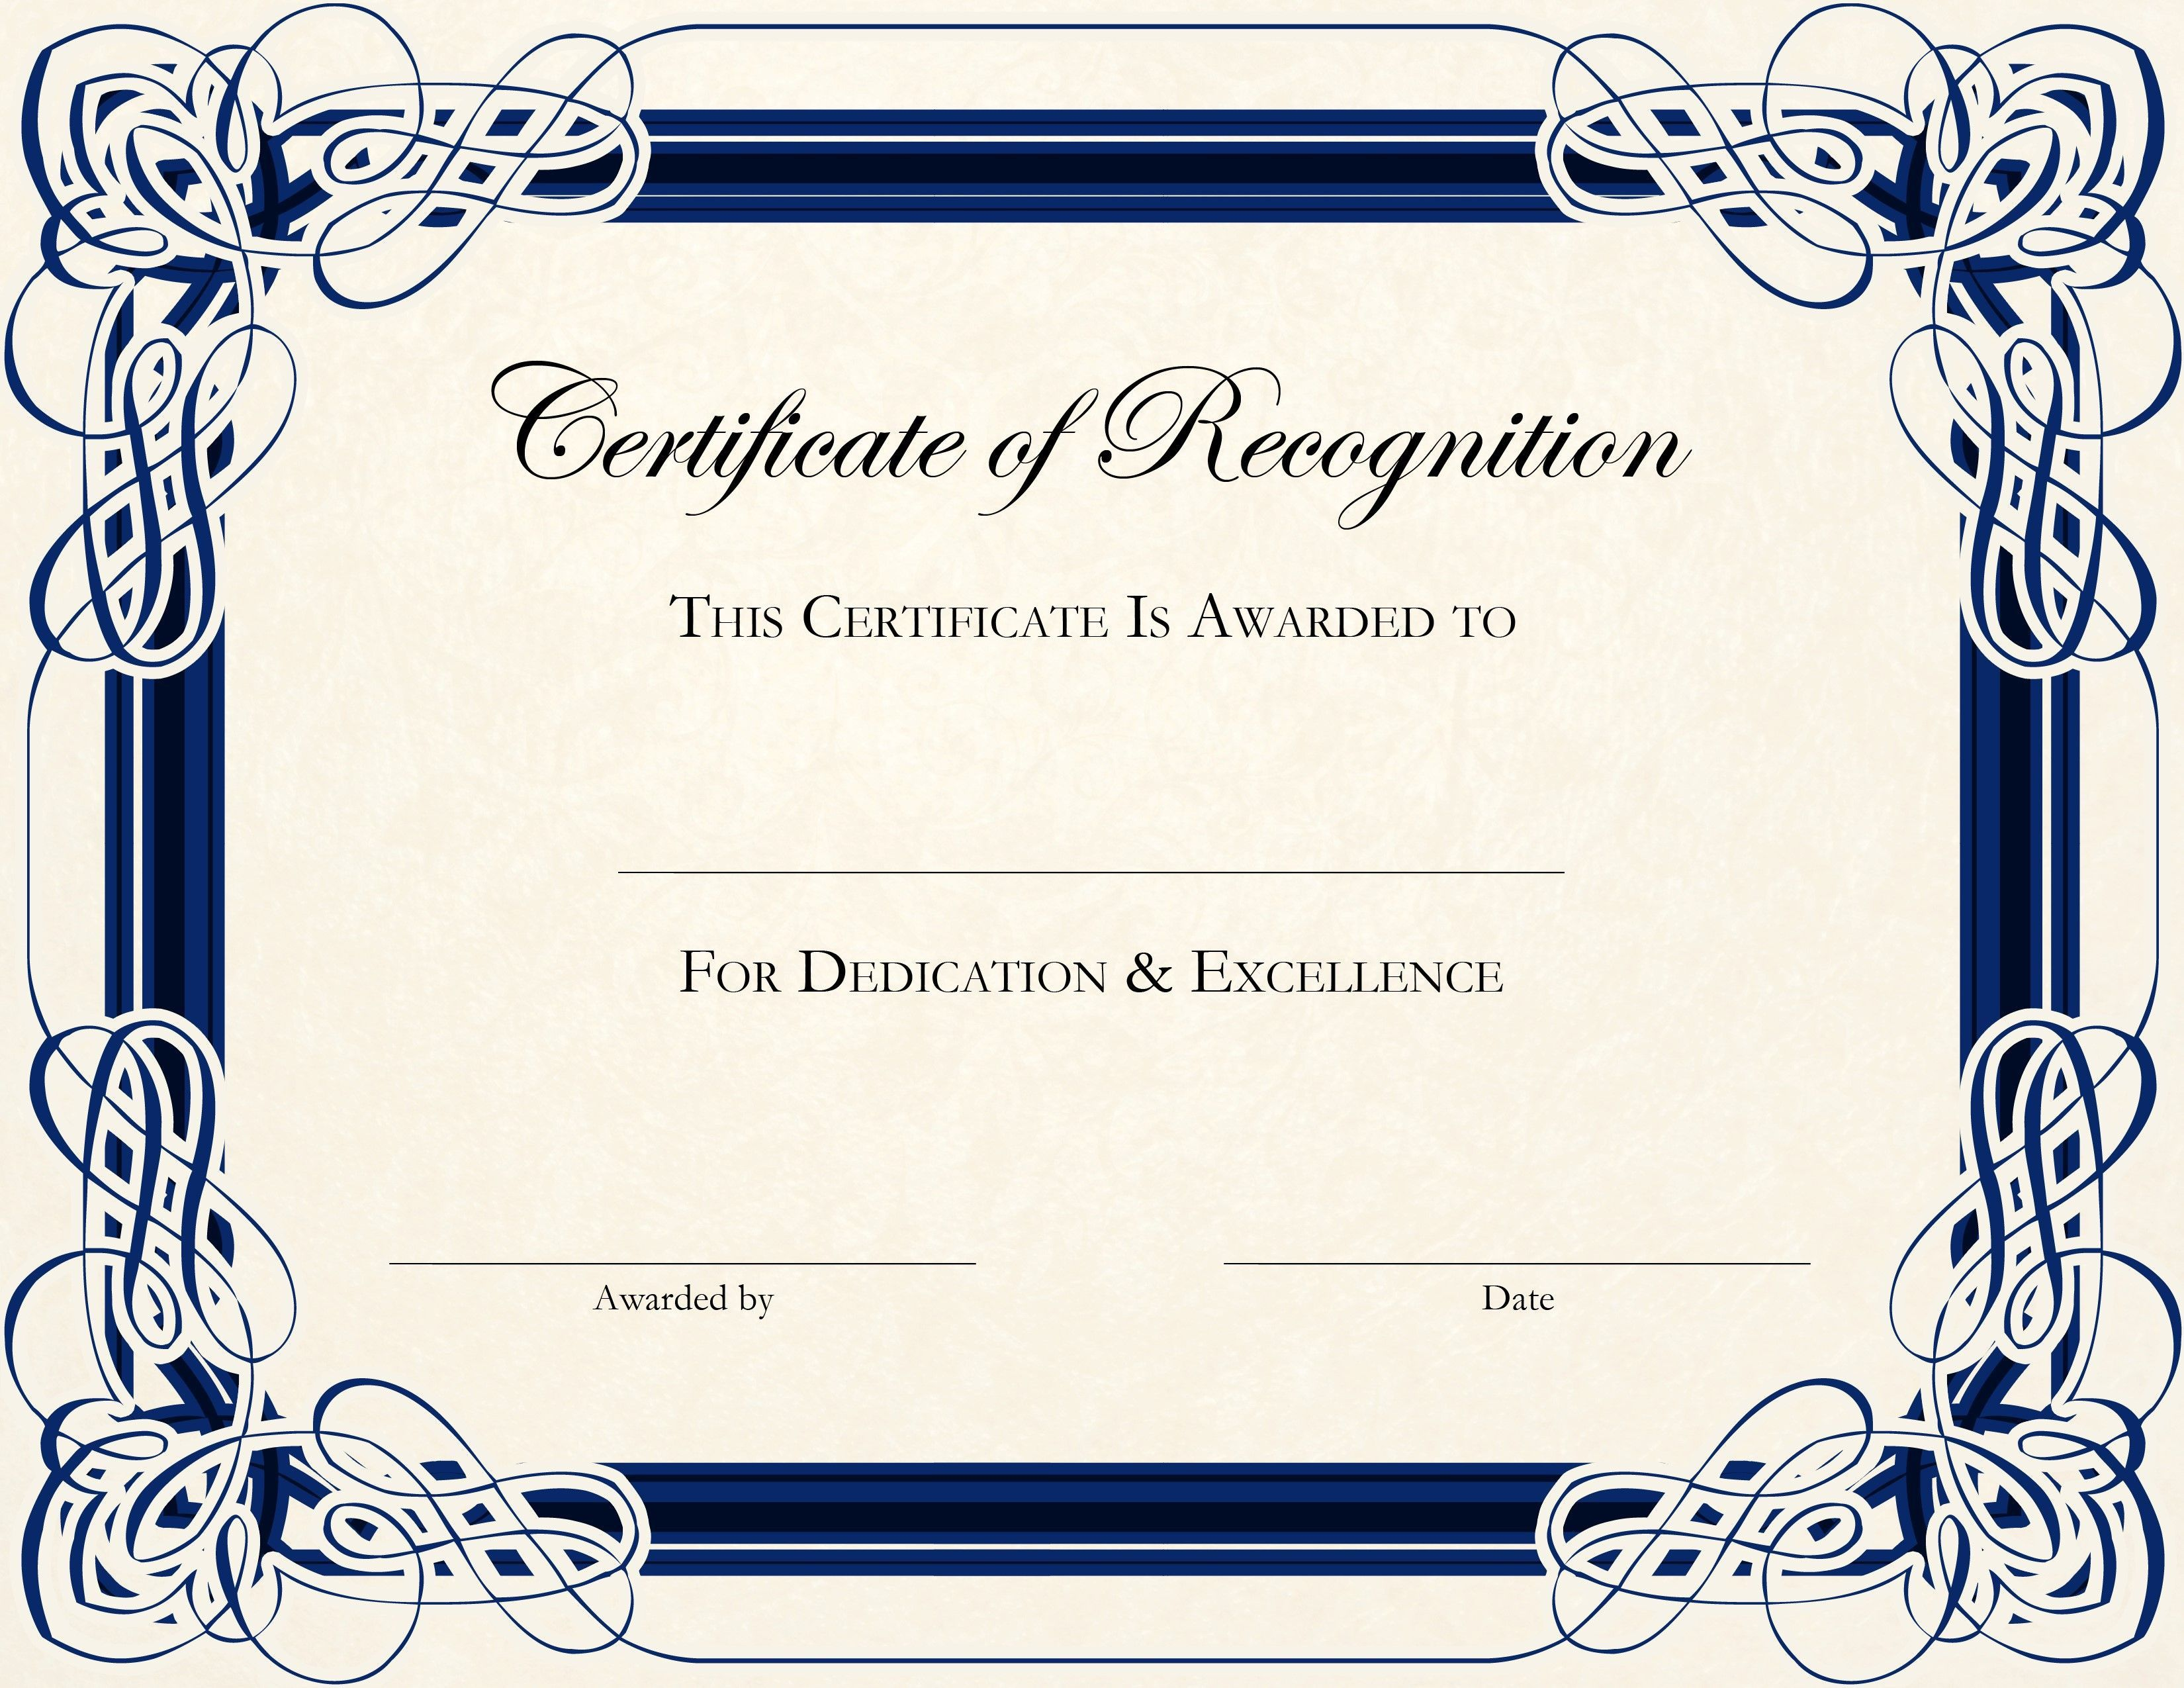 003 Unusual Free Printable Blank Certificate Template Inspiration  Templates Gift Of AchievementFull